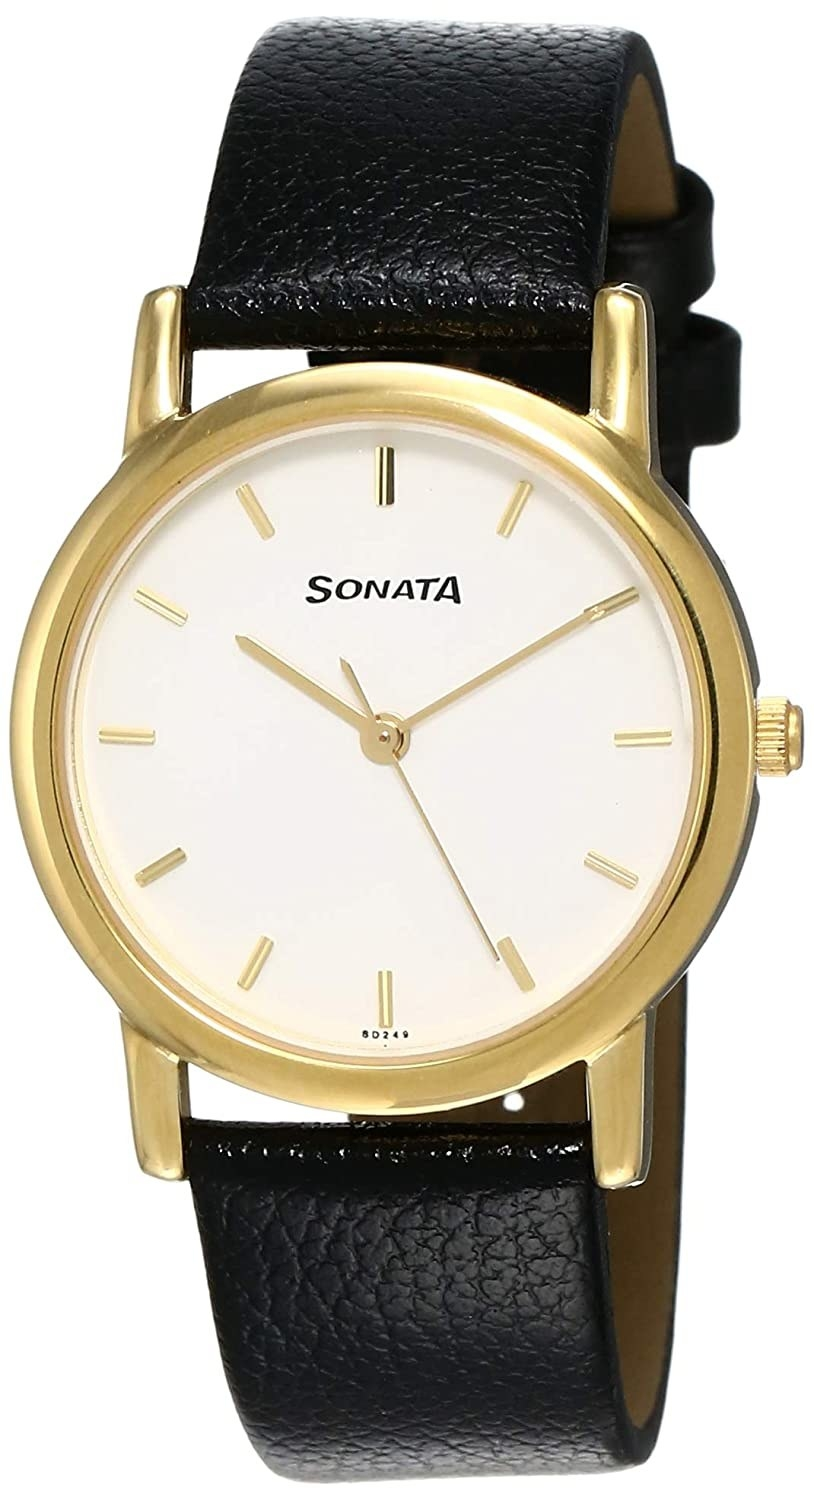 A black and golden watch